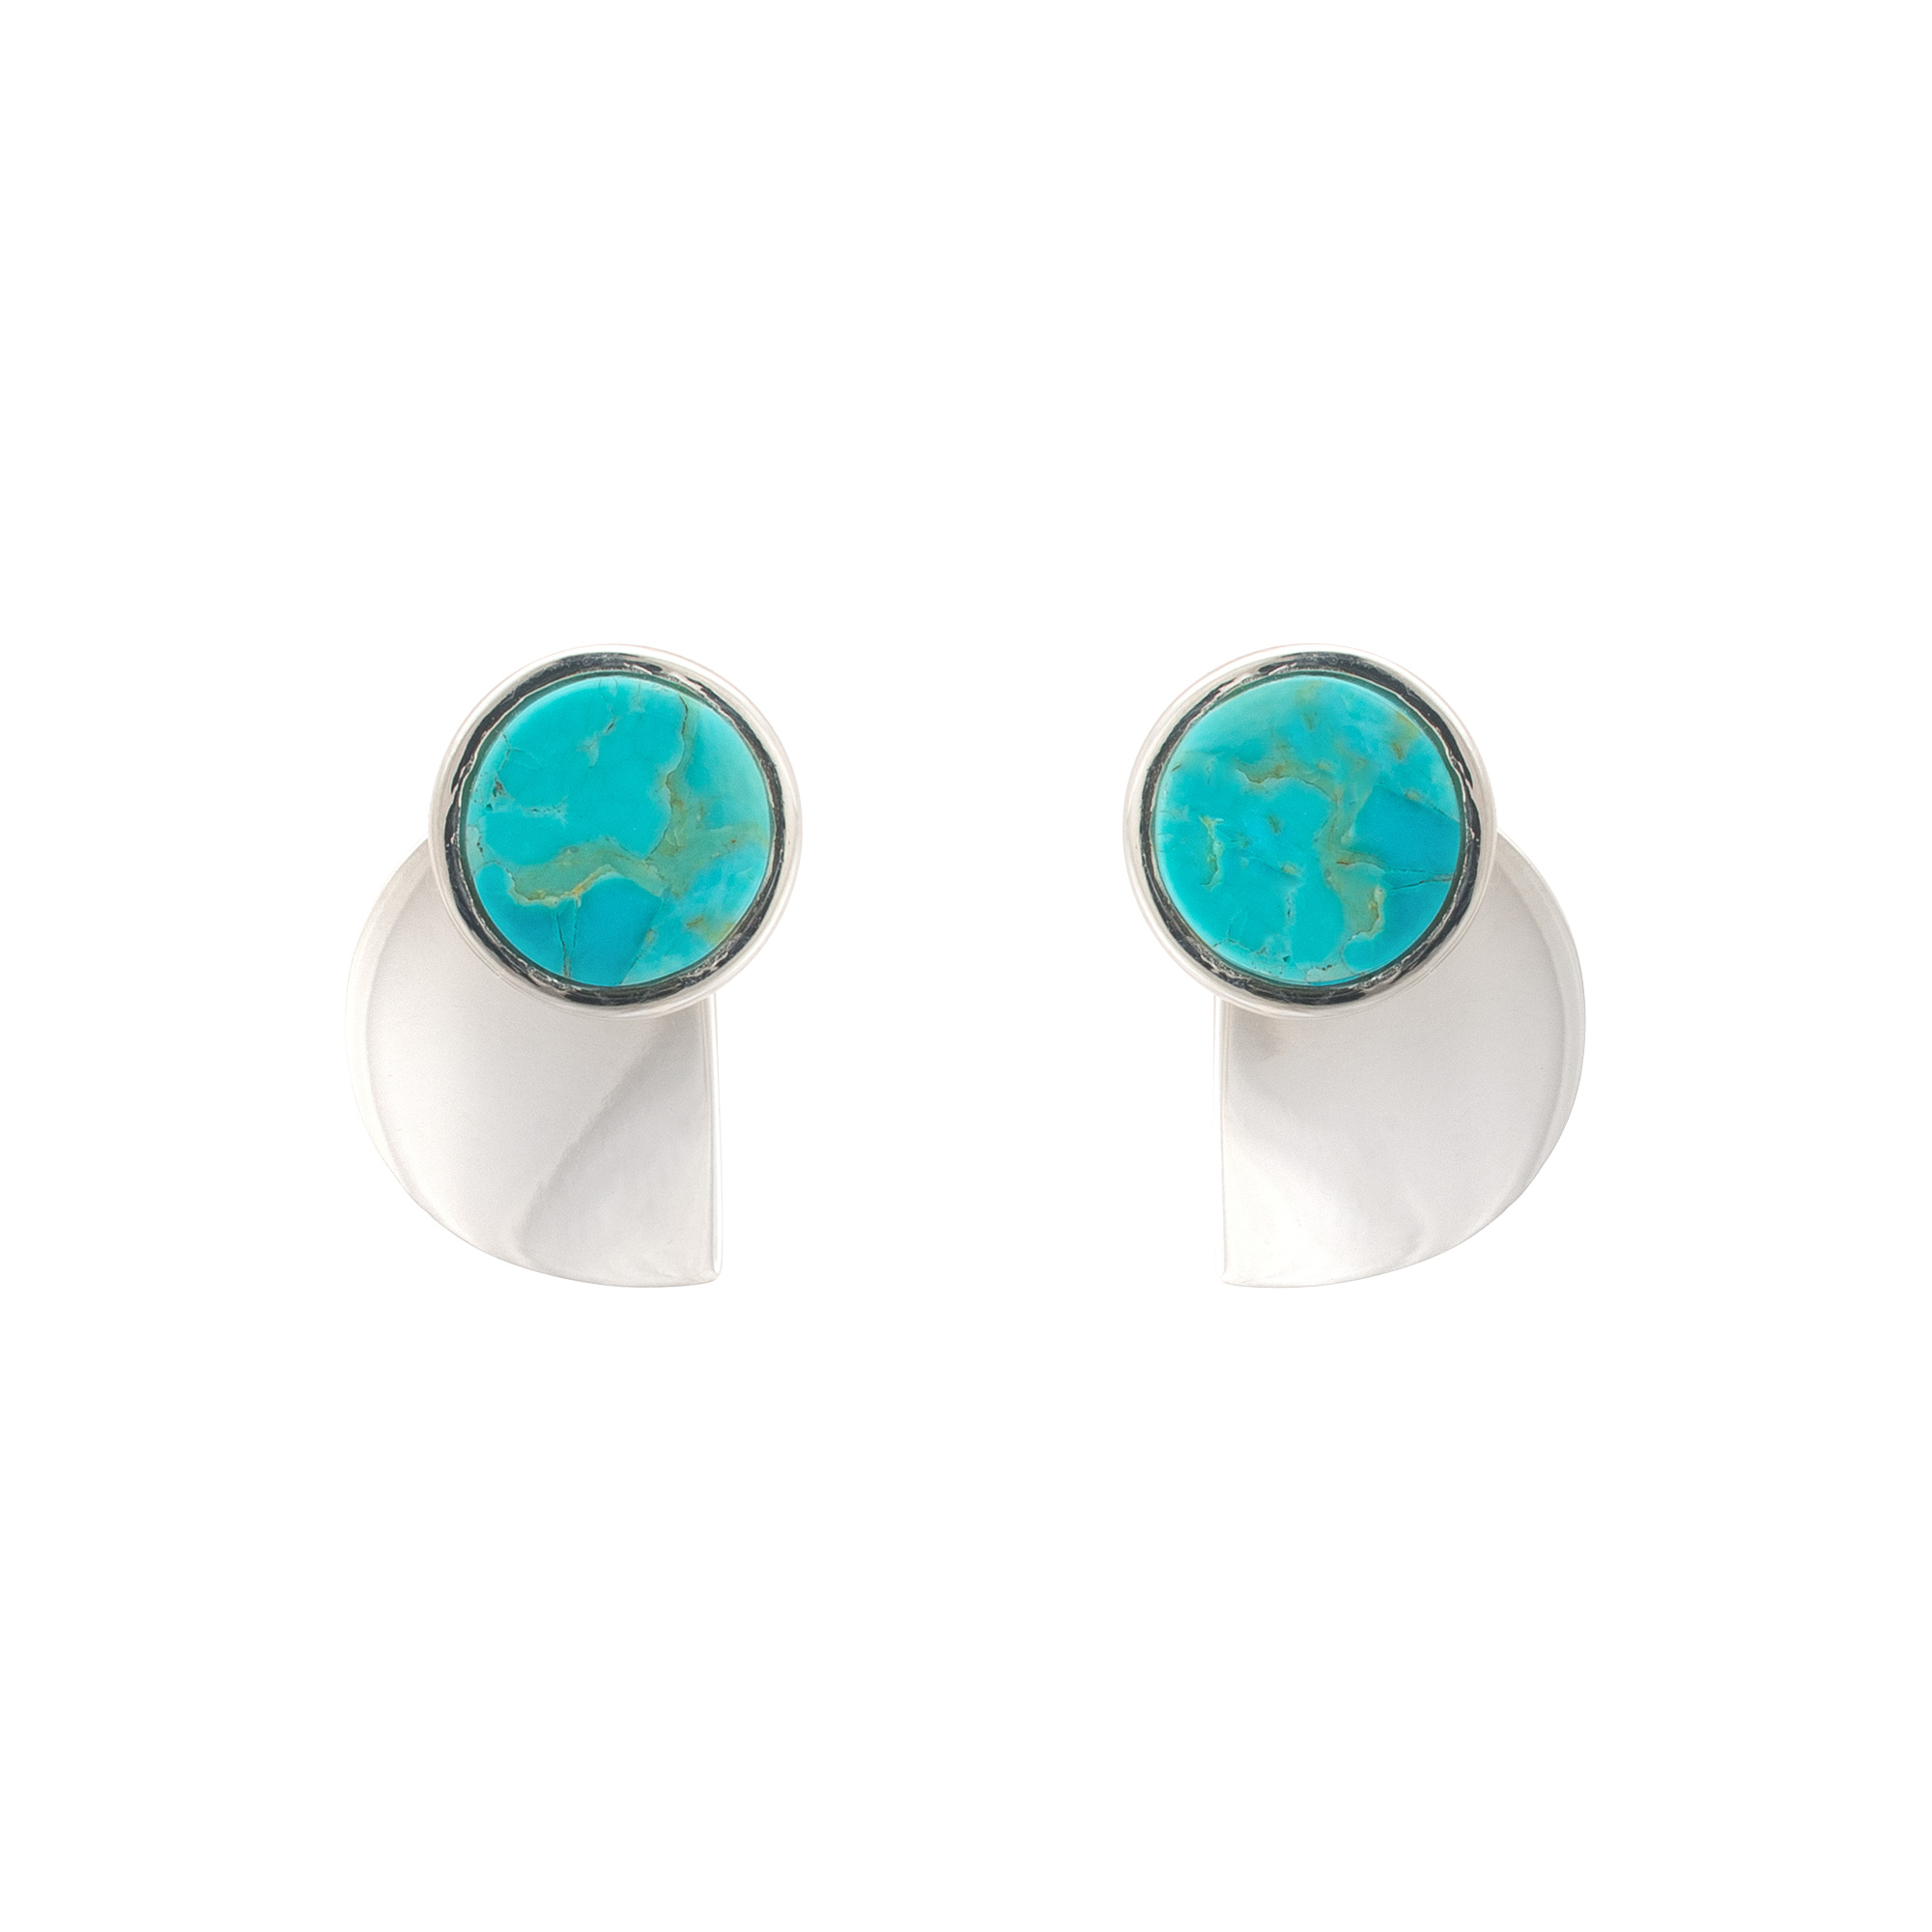 tressa silver paw collection genuine journee jewelry stud print turquoise bear product sterling earrings watches